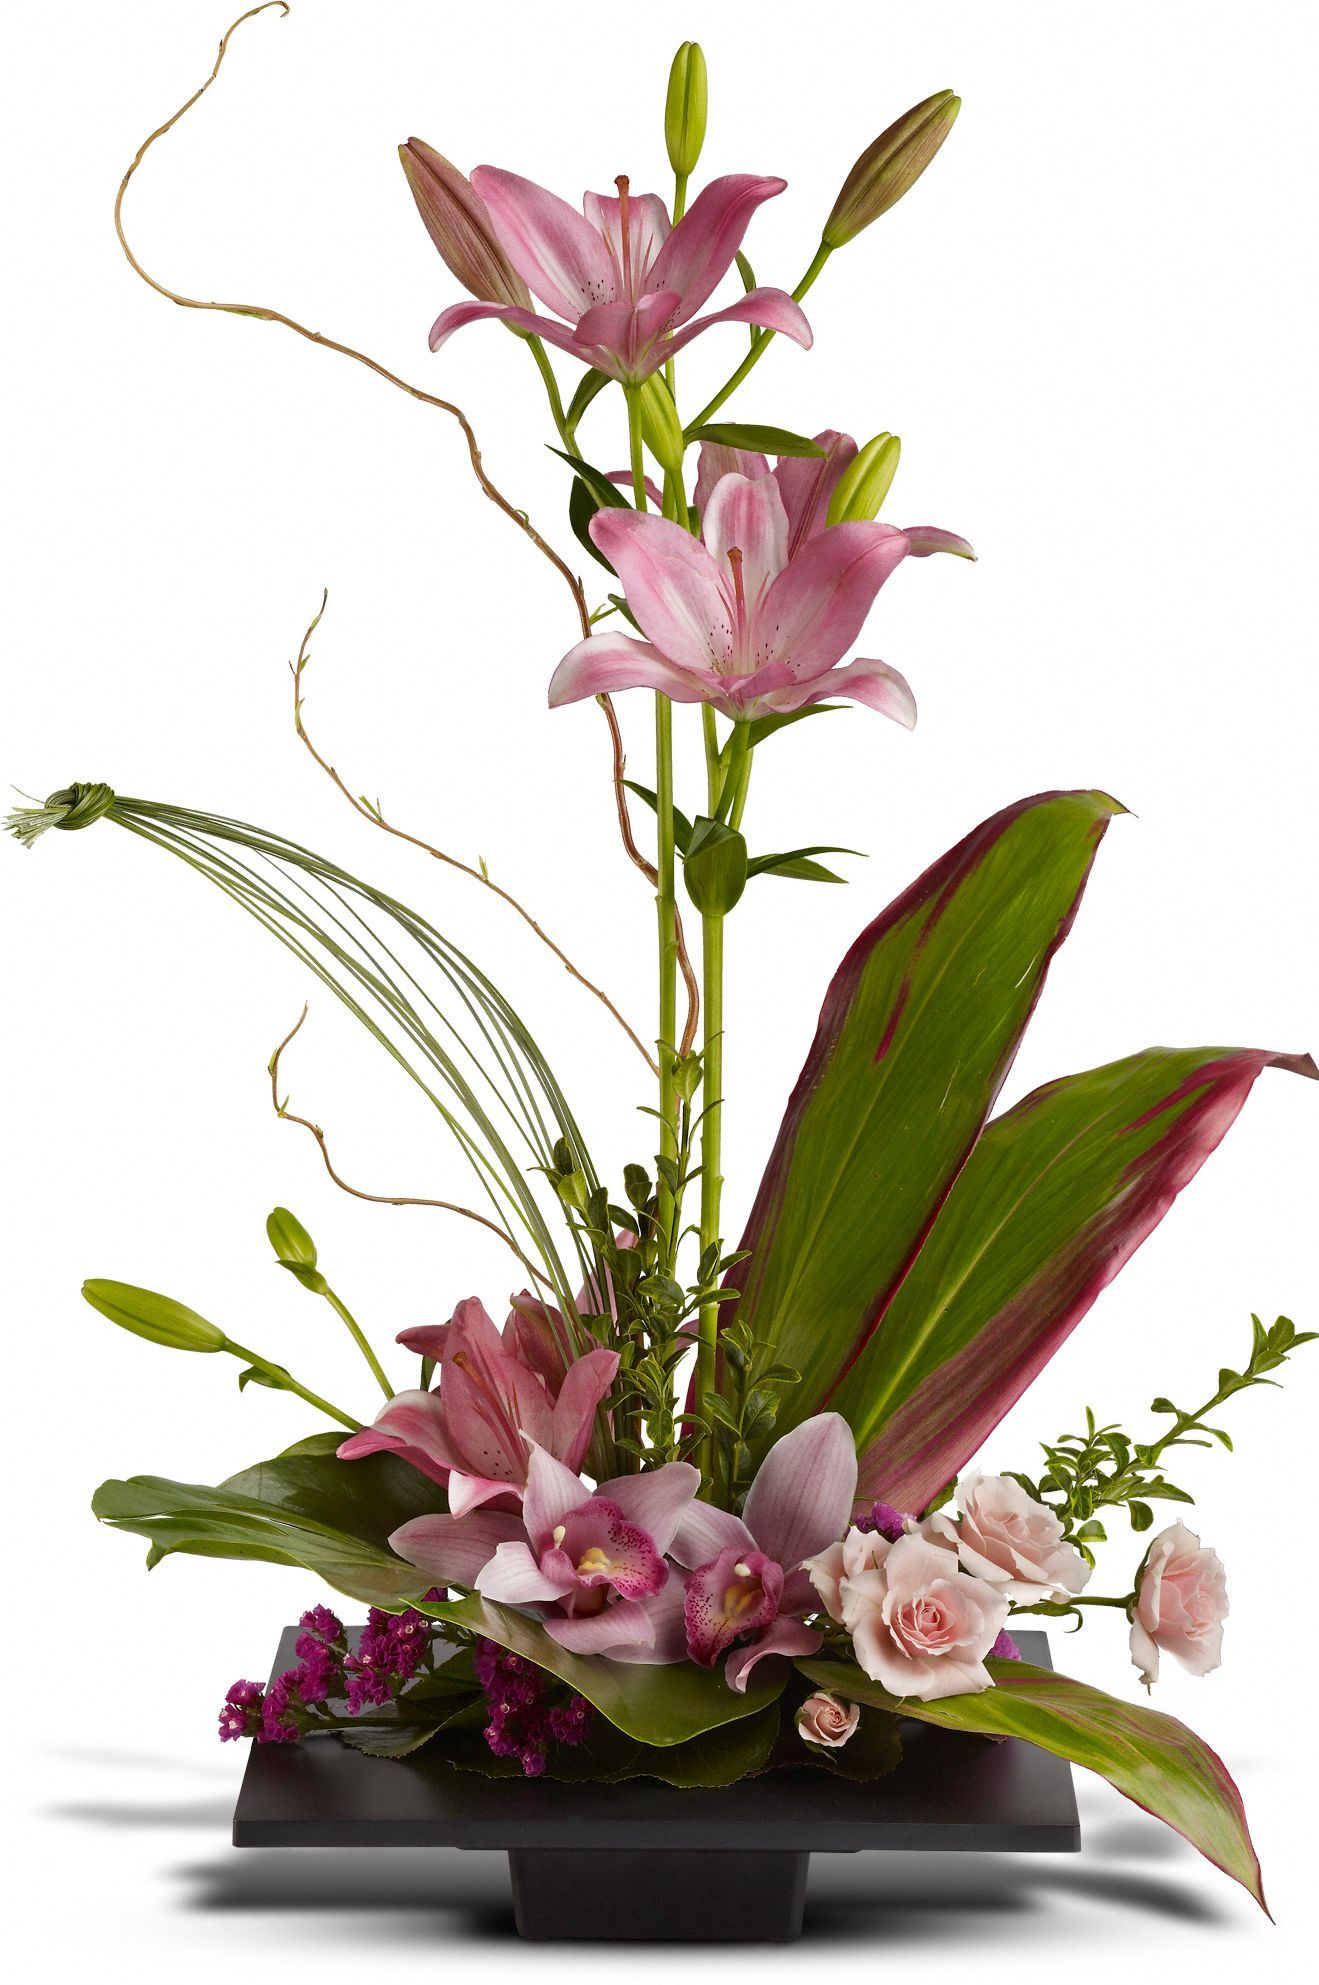 With this unique arrangement, you are showing admiration, sweetness, playfulness, and long-lasting relationships/friendships. ---- @Teleflora